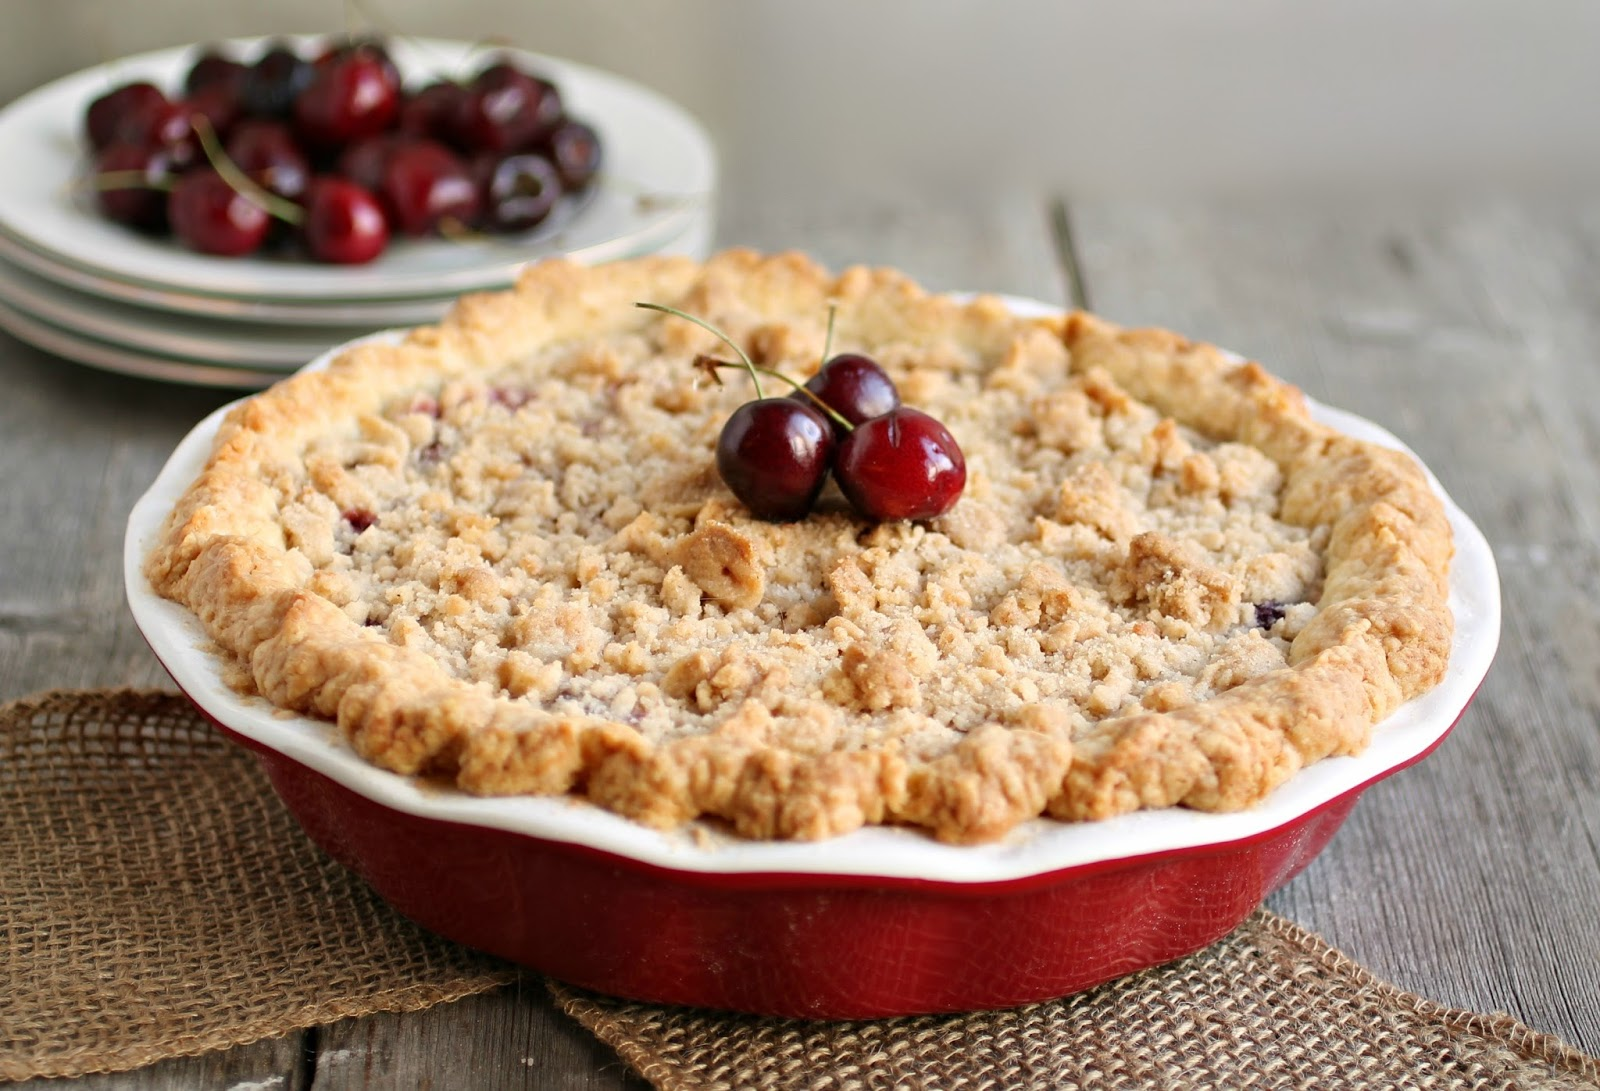 Apple and Cherry Pie with Oatmeal Crumble Topping Recipe ... |Cherry Pie With Crumb Topping